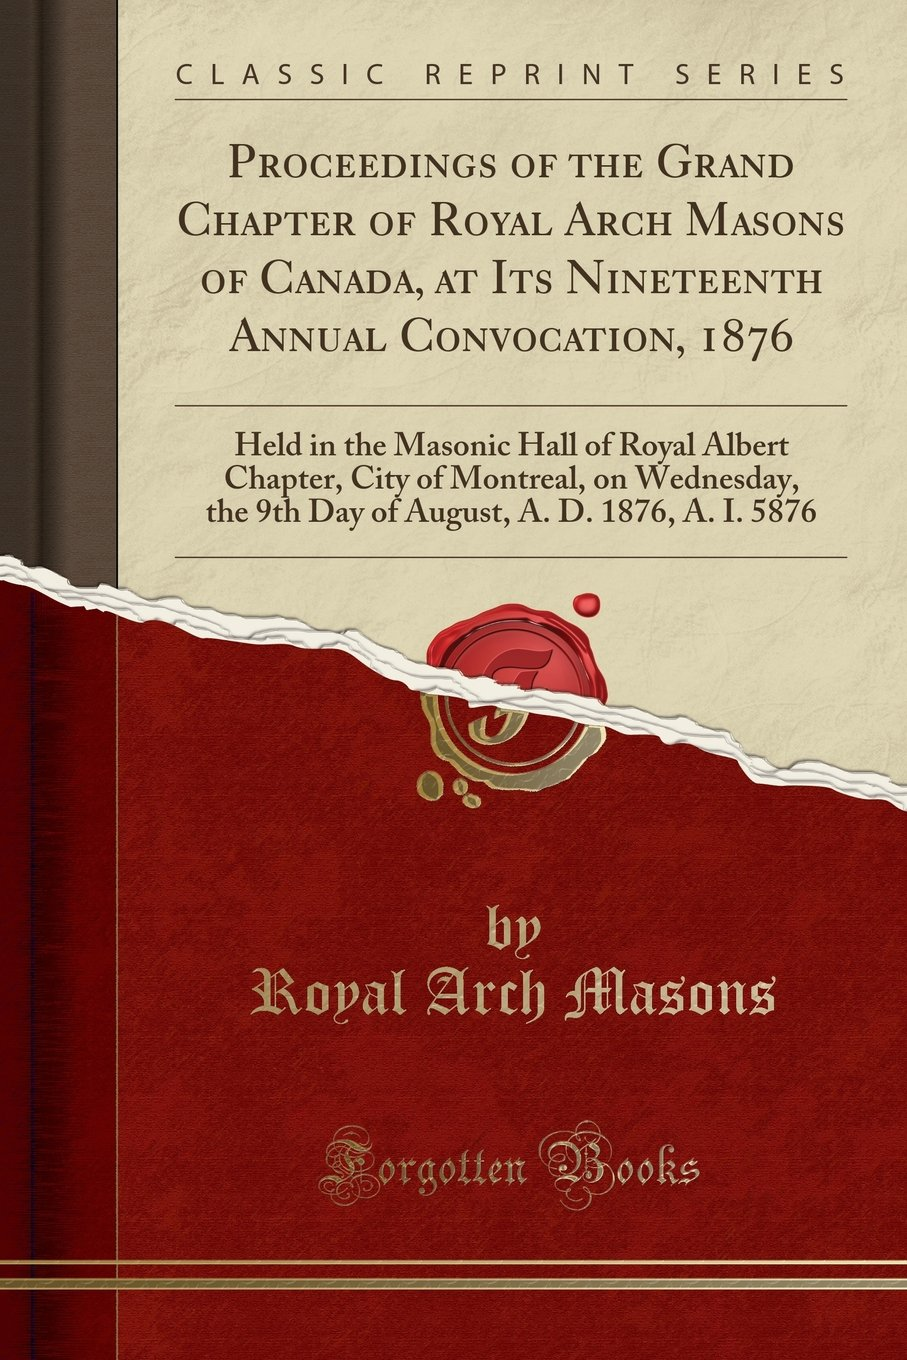 Download Proceedings of the Grand Chapter of Royal Arch Masons of Canada, at Its Nineteenth Annual Convocation, 1876: Held in the Masonic Hall of Royal Albert ... A. D. 1876, A. I. 5876 (Classic Reprint) pdf epub